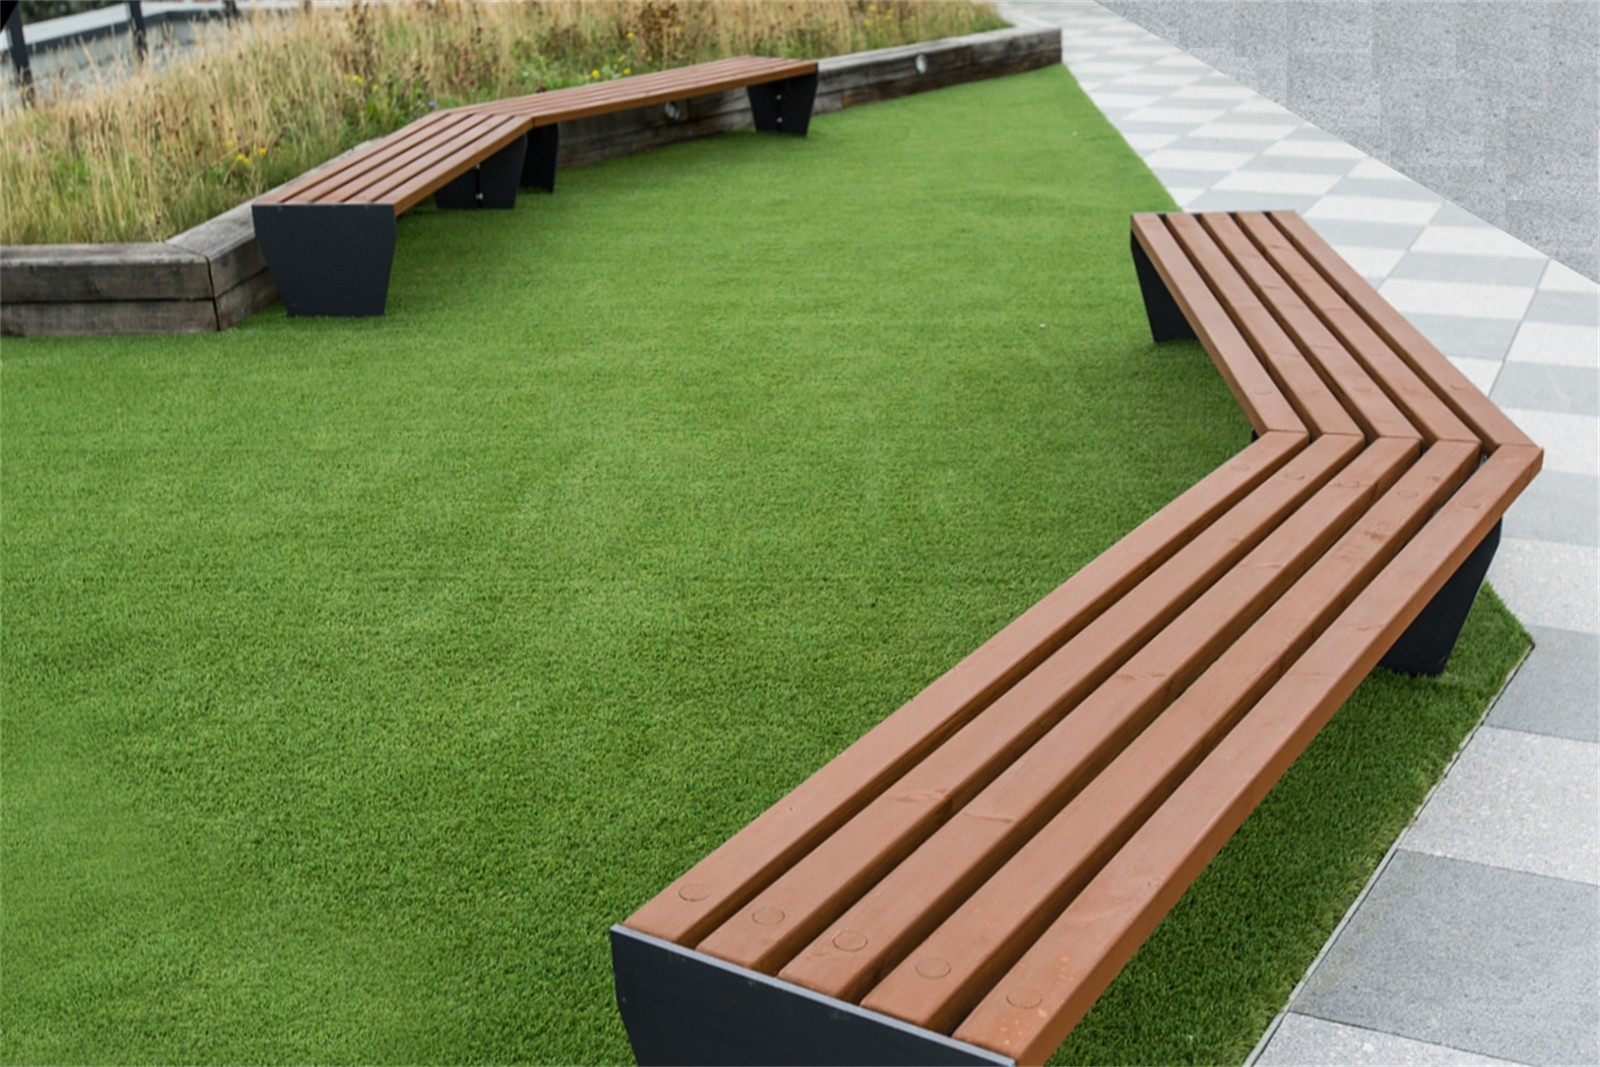 c121t01 - Angled timber slatted benches